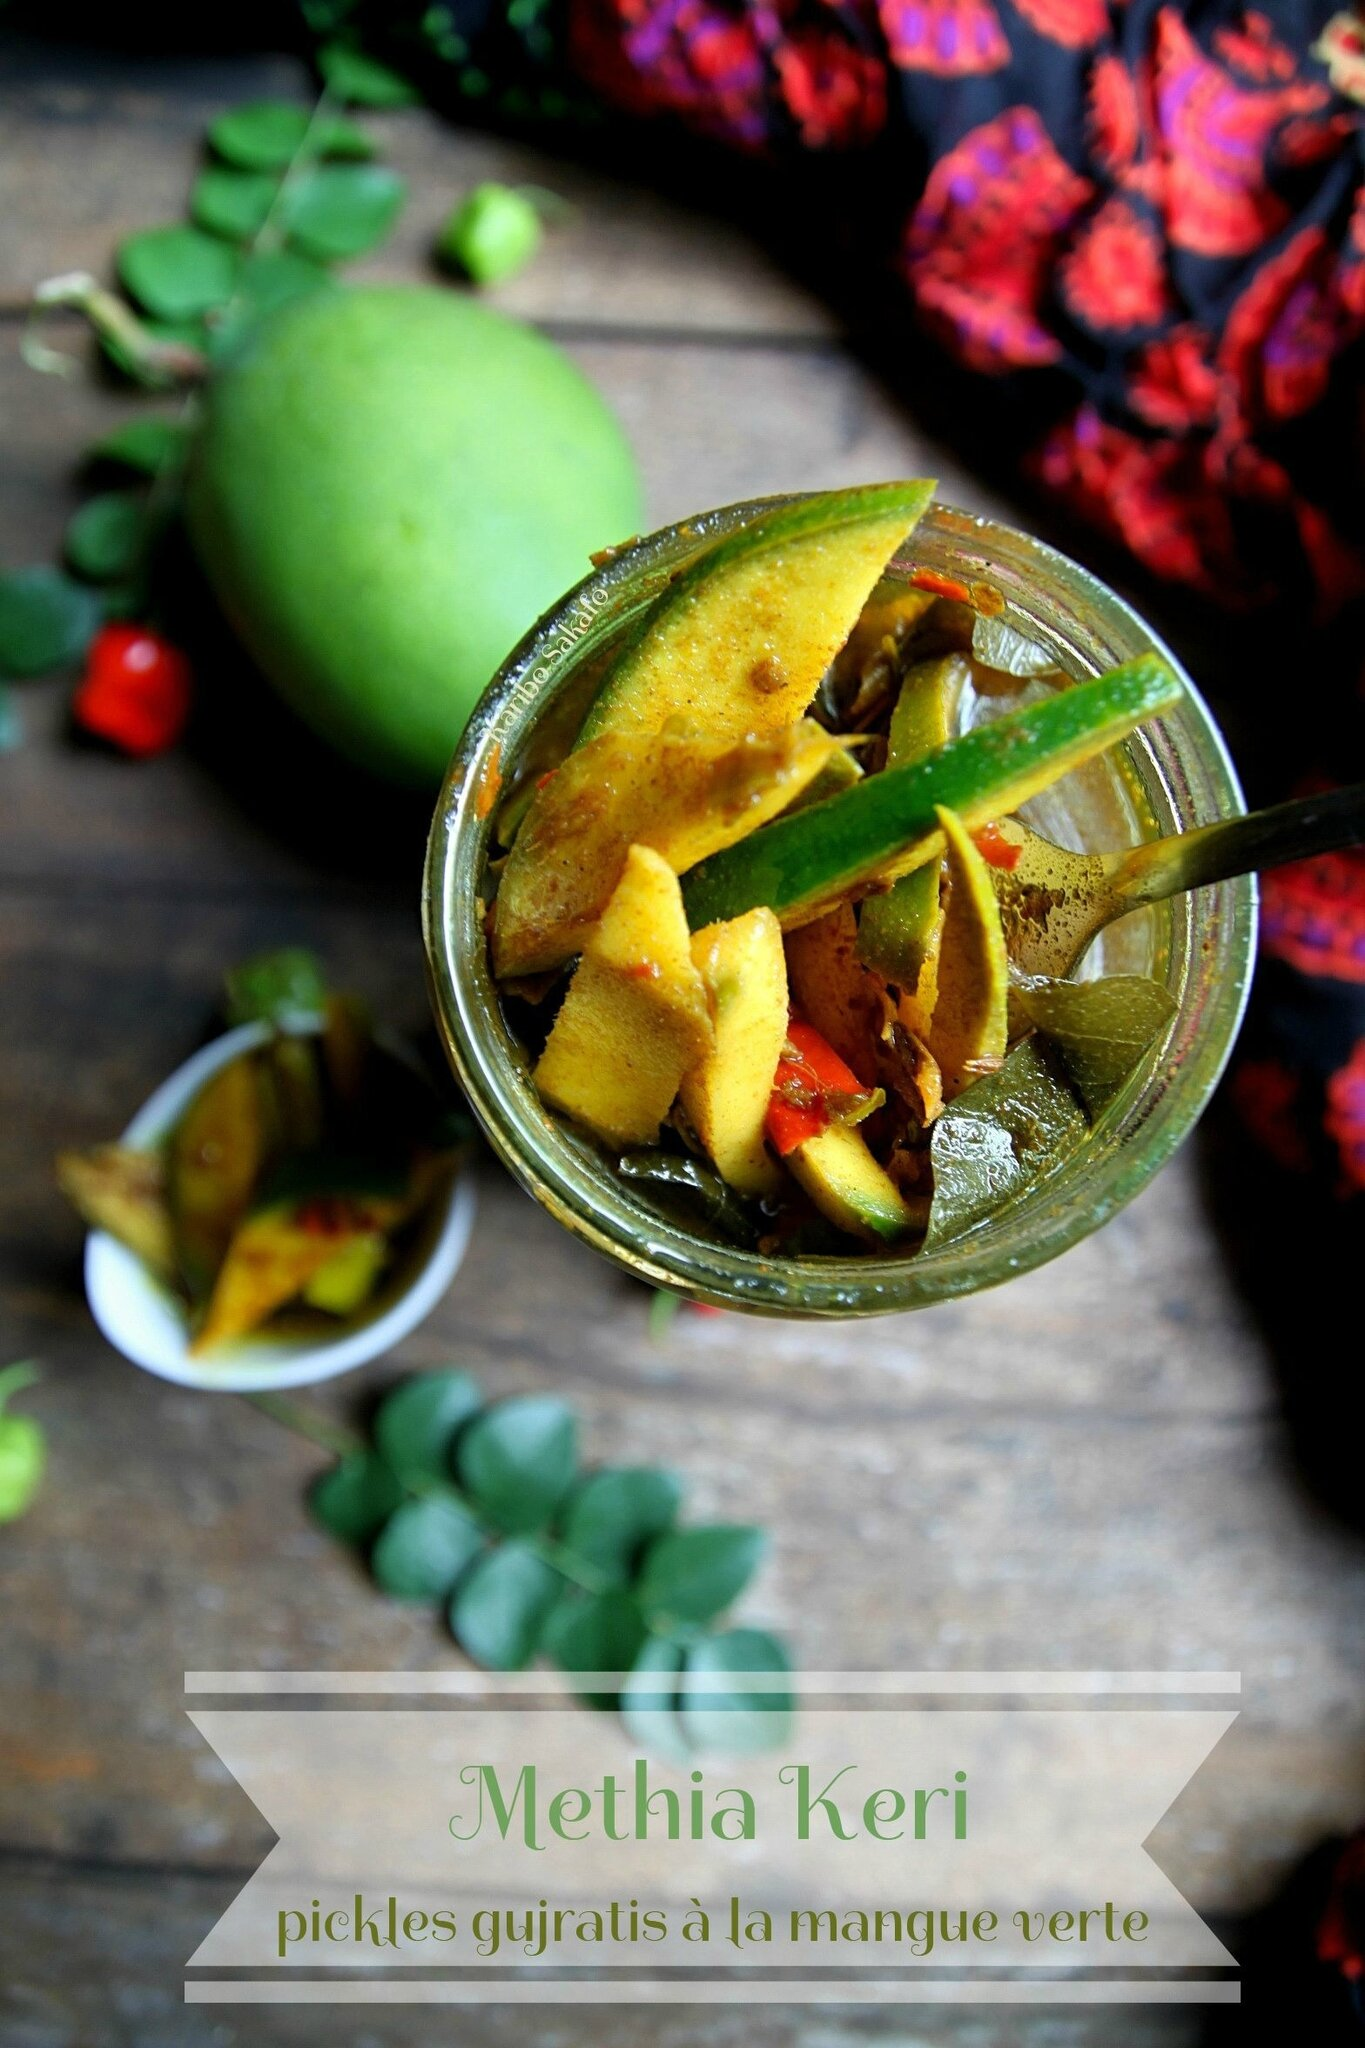 Methia keri: pickles gujratis à la mangue verte